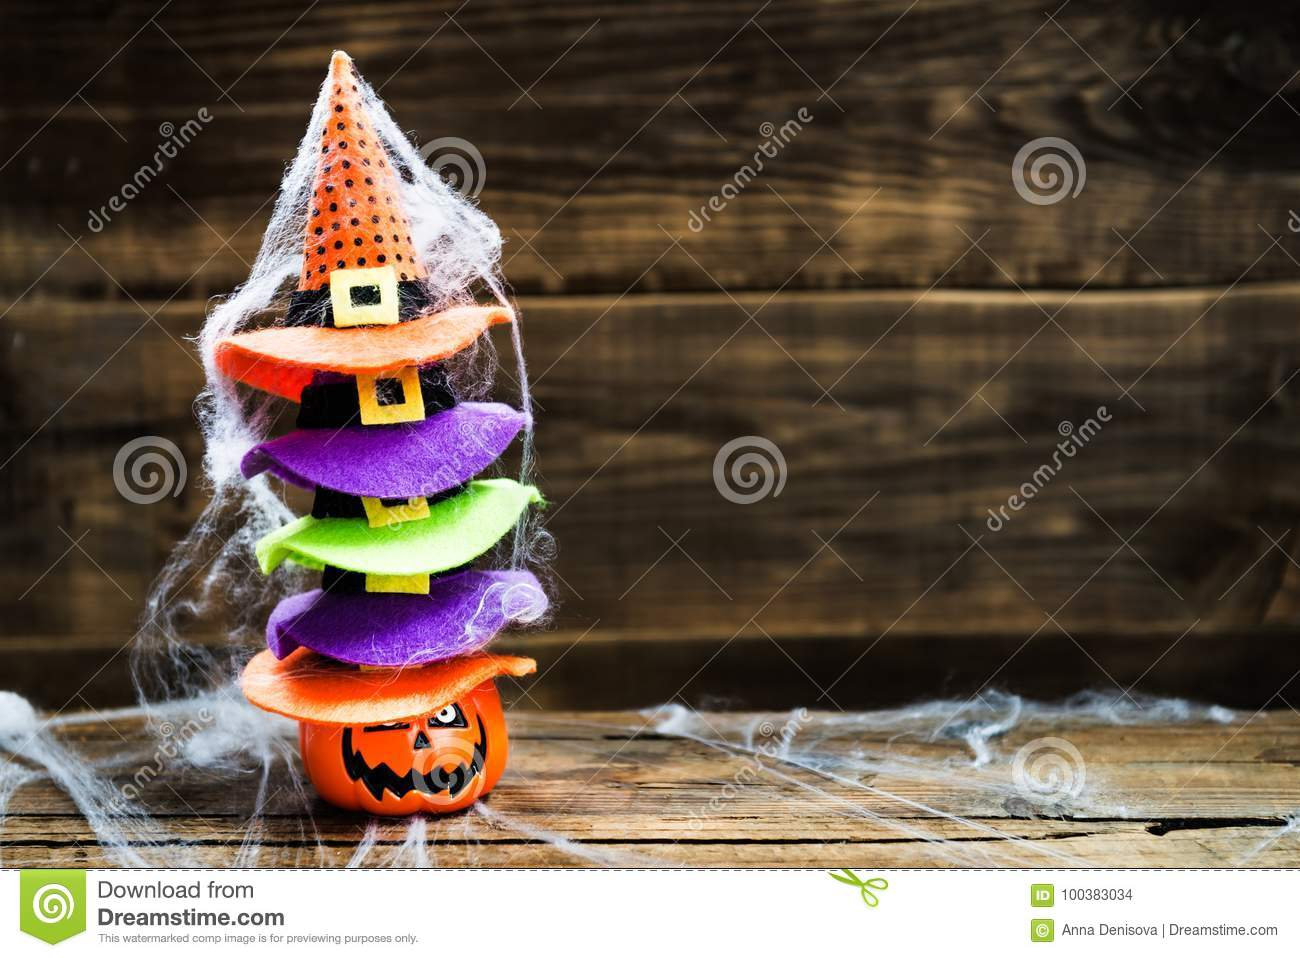 309fed6b71f Halloween card concept with pumpkin head and stack of cute little witch hats  on it